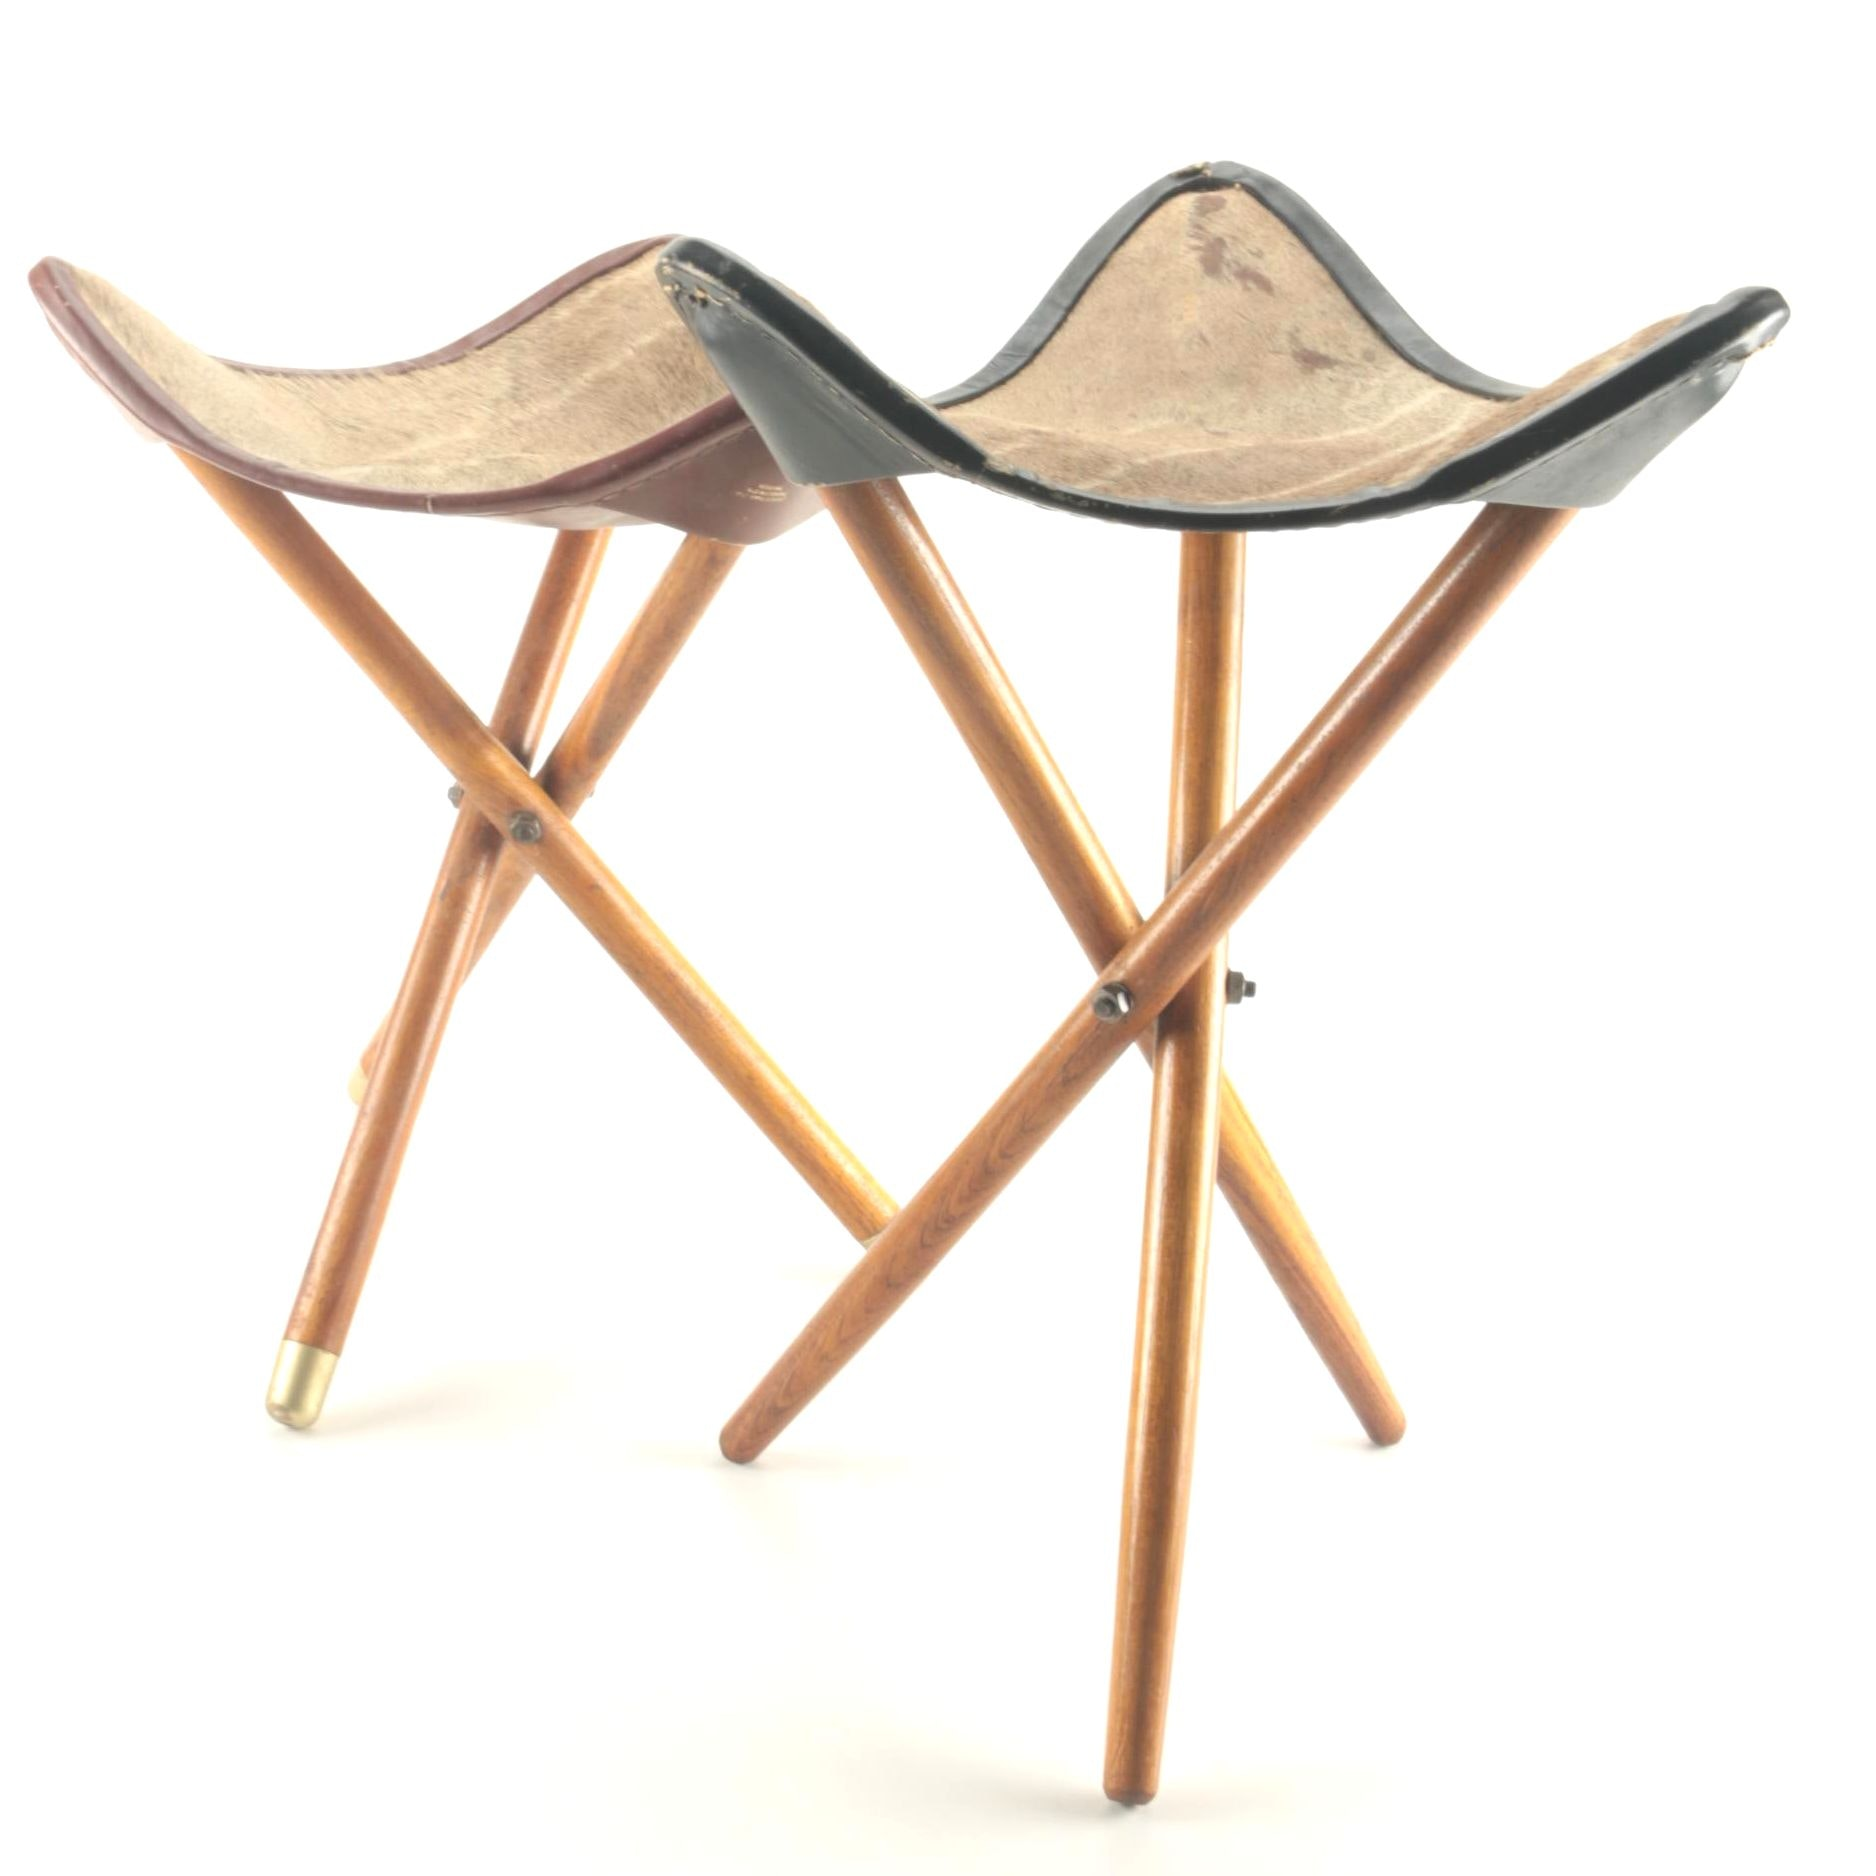 Vintage Greater Kudu Folding Camp Stools by Zimmermann Ltd.